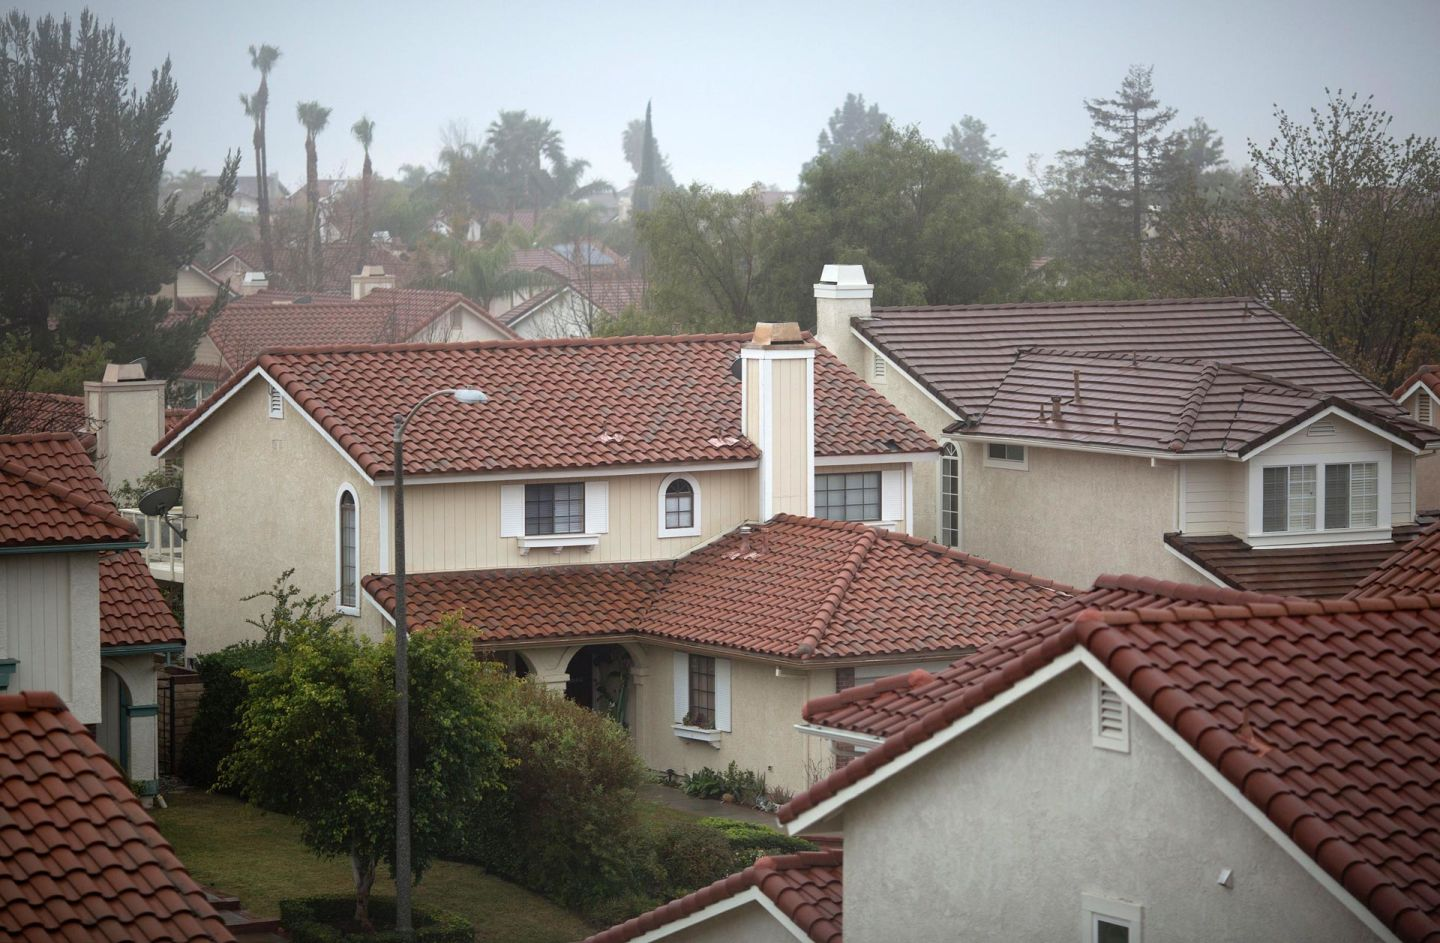 Many people in this Porter Ranch neighborhood have left their homes due to the massive, ongoing natural gas leak at SoCalGas' nearby Aliso Canyon facility. DAVID MCNEW/AFP/Getty Images